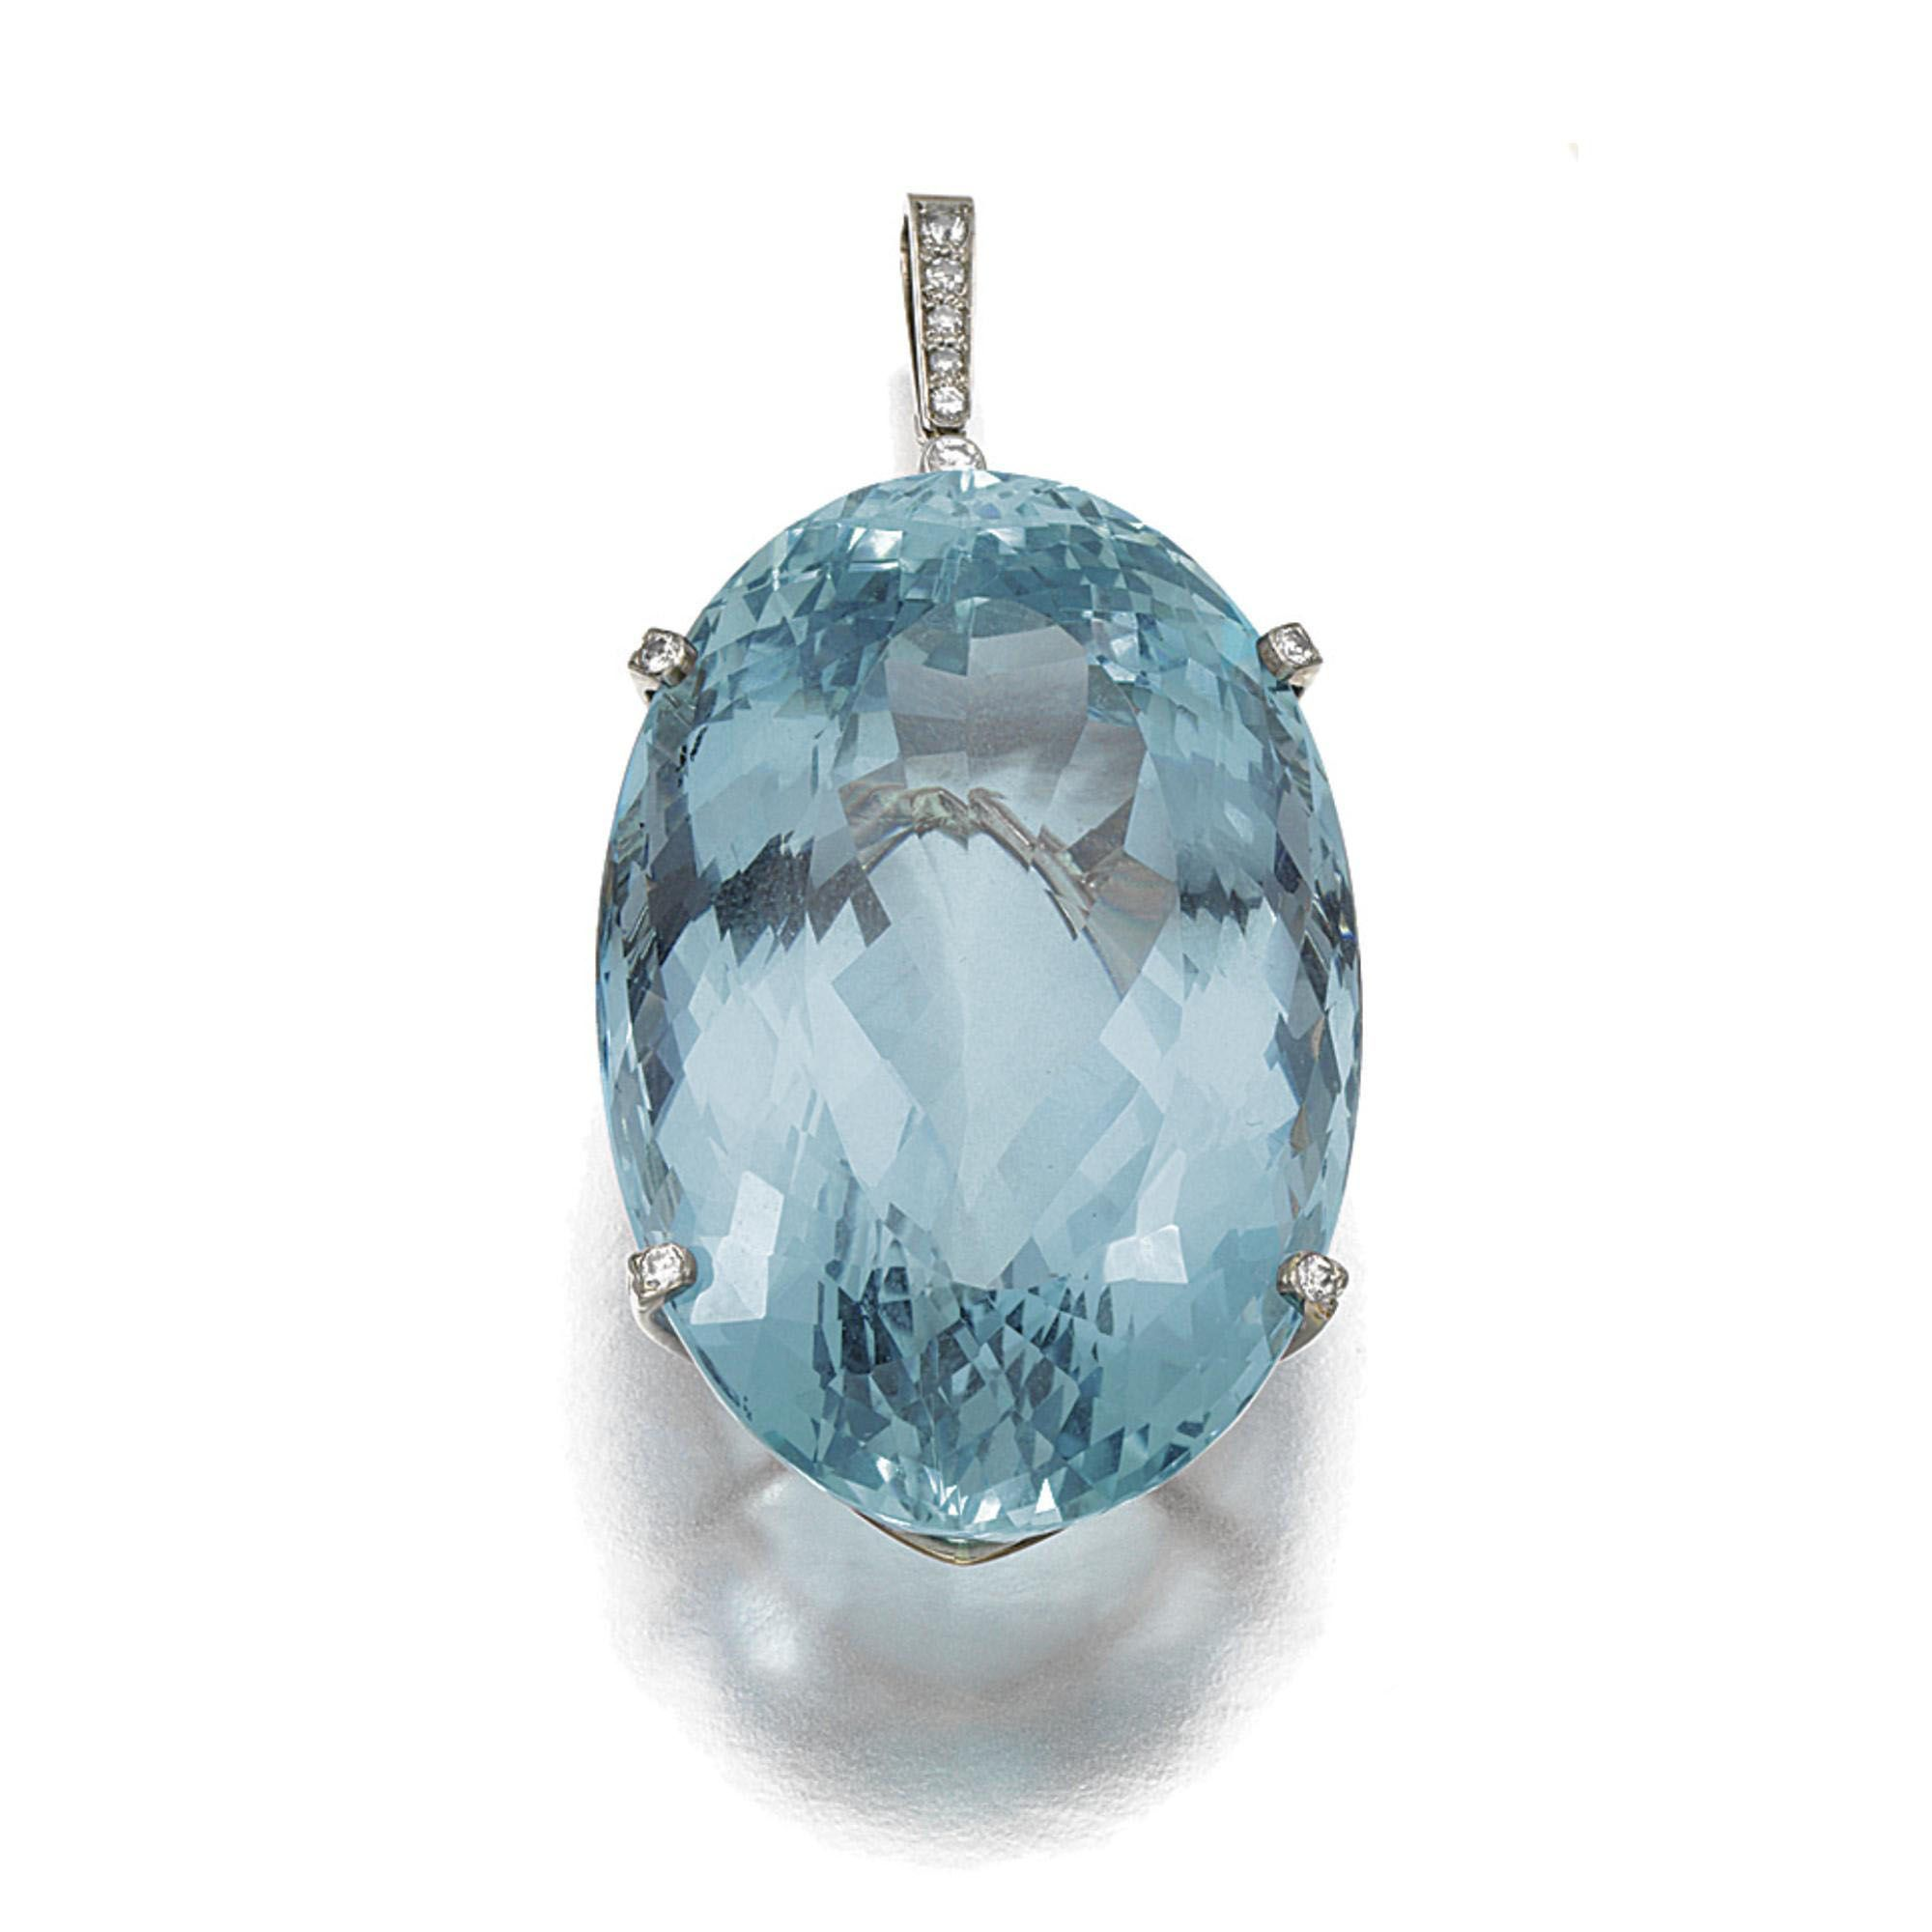 Aquamarine and diamond pendant set with an oval aquamarine stated to